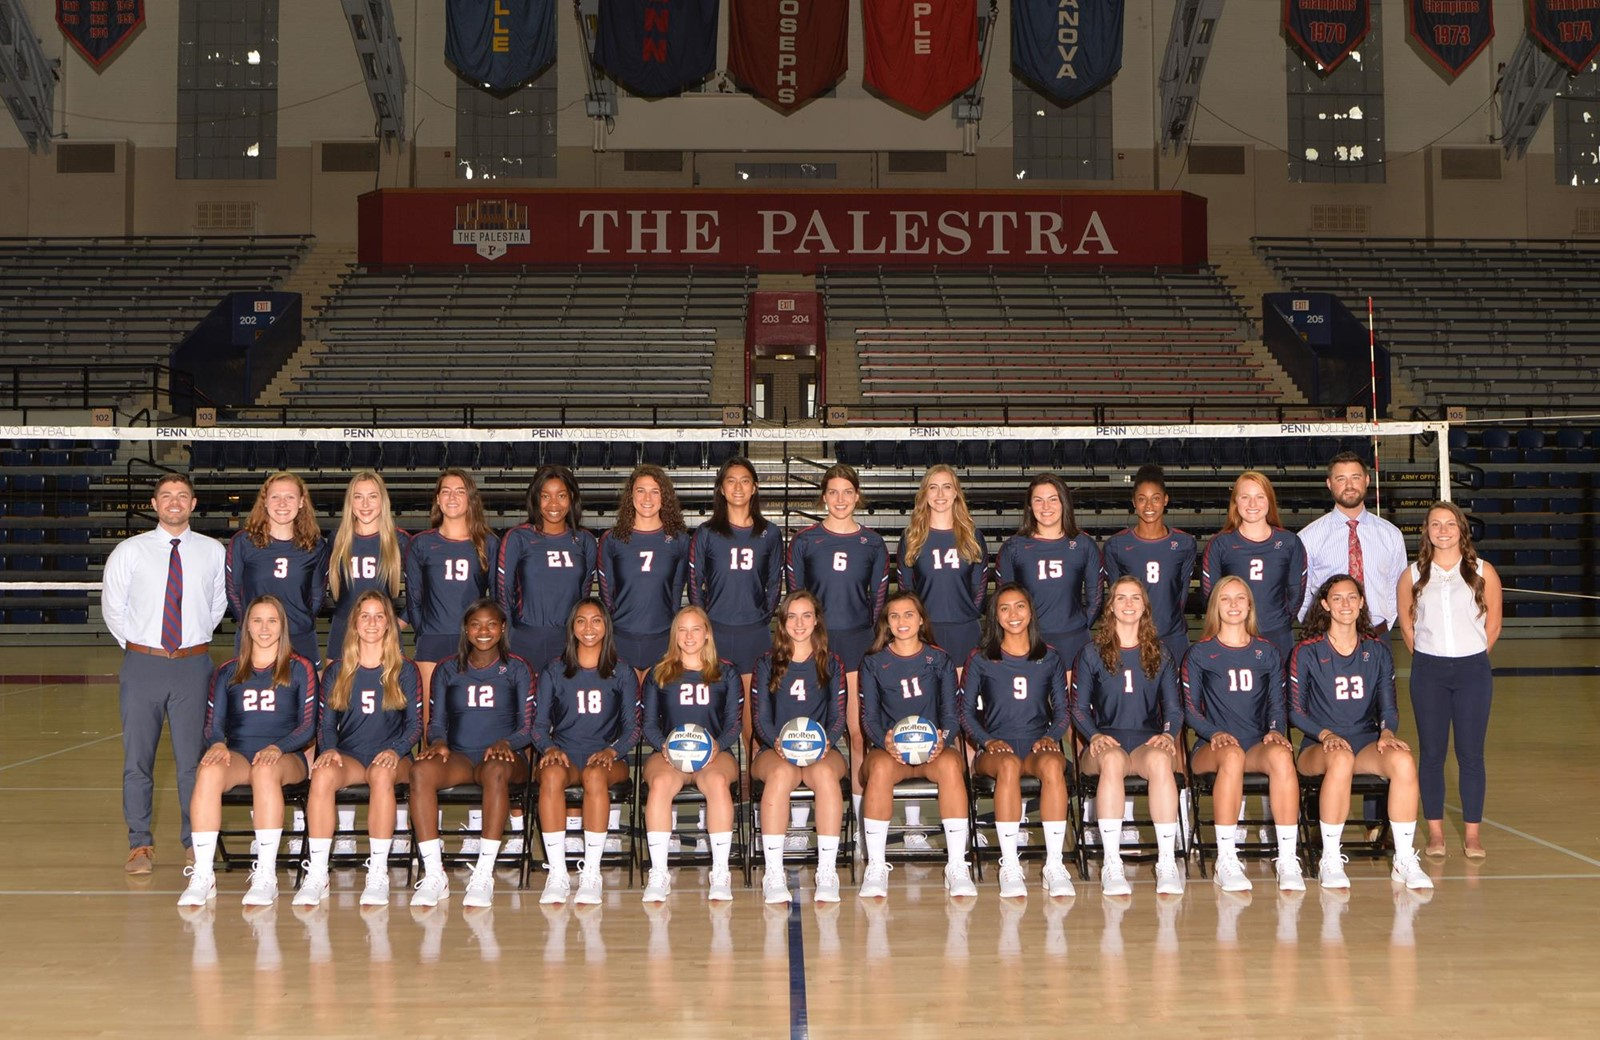 2018 Women S Volleyball Roster University Of Pennsylvania Athletics